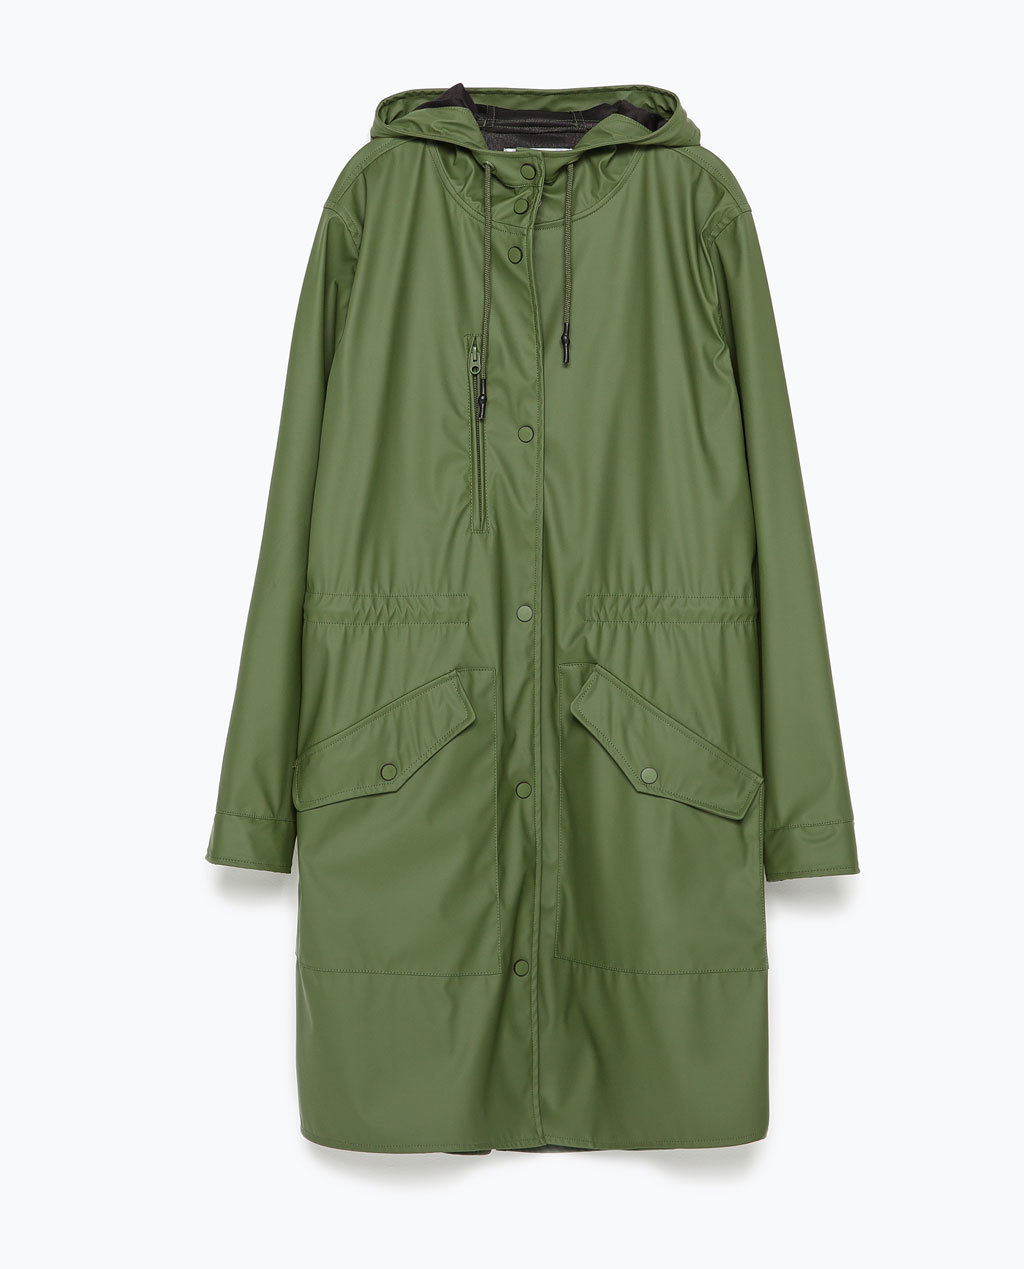 Waterproof Parka - pattern: plain; fit: loose; style: parka; collar: high neck; length: mid thigh; predominant colour: khaki; occasions: casual; fibres: polyester/polyamide - 100%; sleeve length: long sleeve; sleeve style: standard; texture group: technical outdoor fabrics; collar break: high; pattern type: fabric; season: s/s 2015; wardrobe: basic